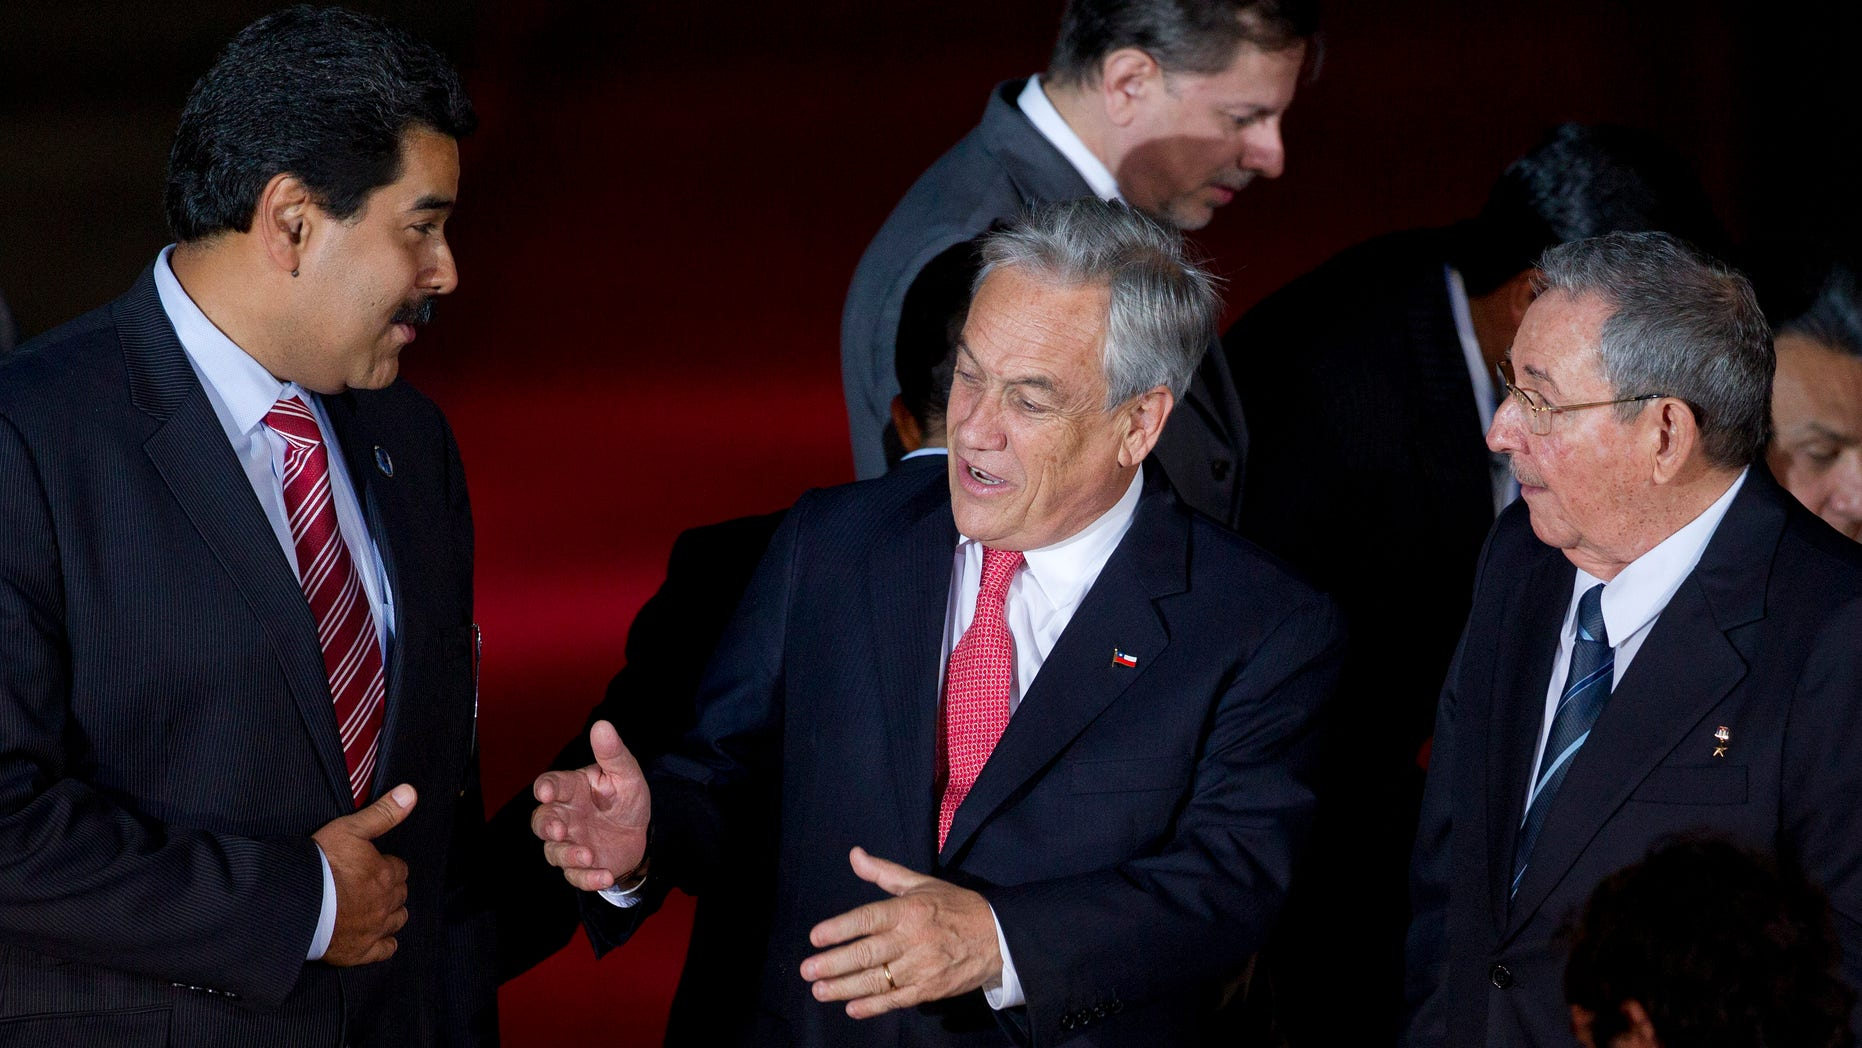 Jan. 27, 2013 - Chile's President Sebastian Pinera, center, speaks with Cuba's President Raul Castro, right, and Venezuela's Vice President Nicolas Maduro, left, at CELAC  (Community of Latin American and Caribbean Countries) summit in Santiago, Chile.